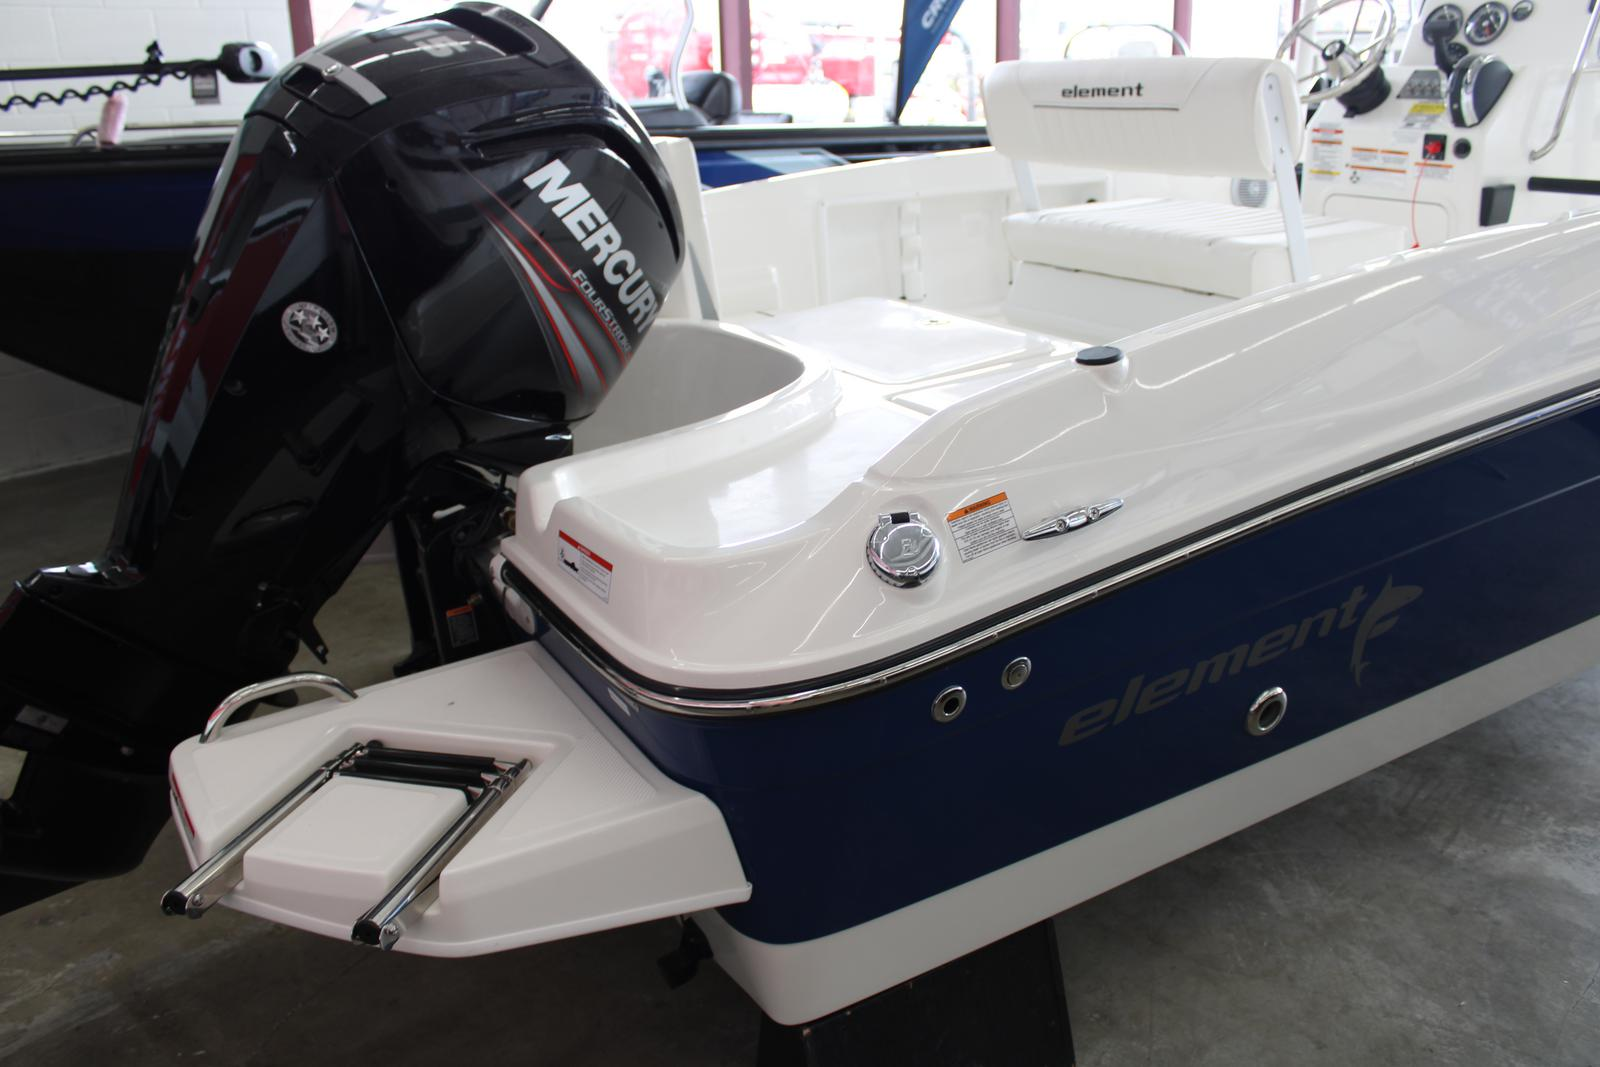 2019 Bayliner boat for sale, model of the boat is Element F18 & Image # 6 of 6